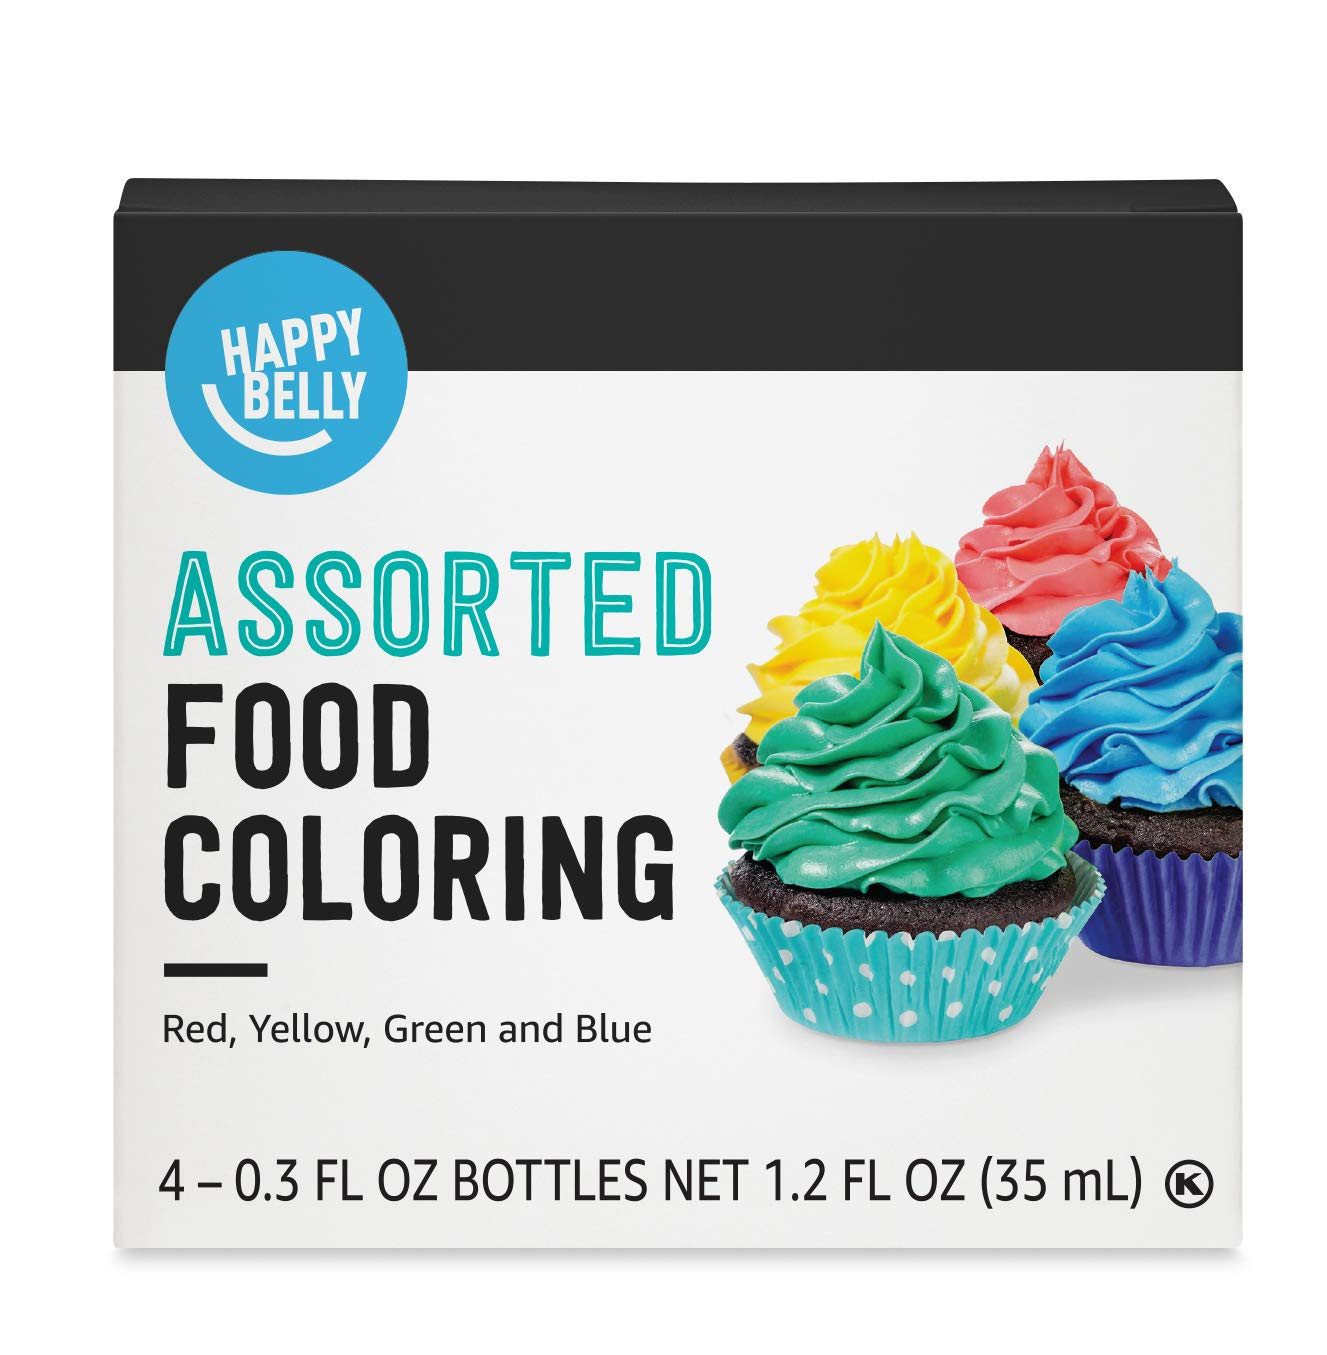 Amazon Brand - Happy Belly Assorted Food Coloring, 1.2 fl oz